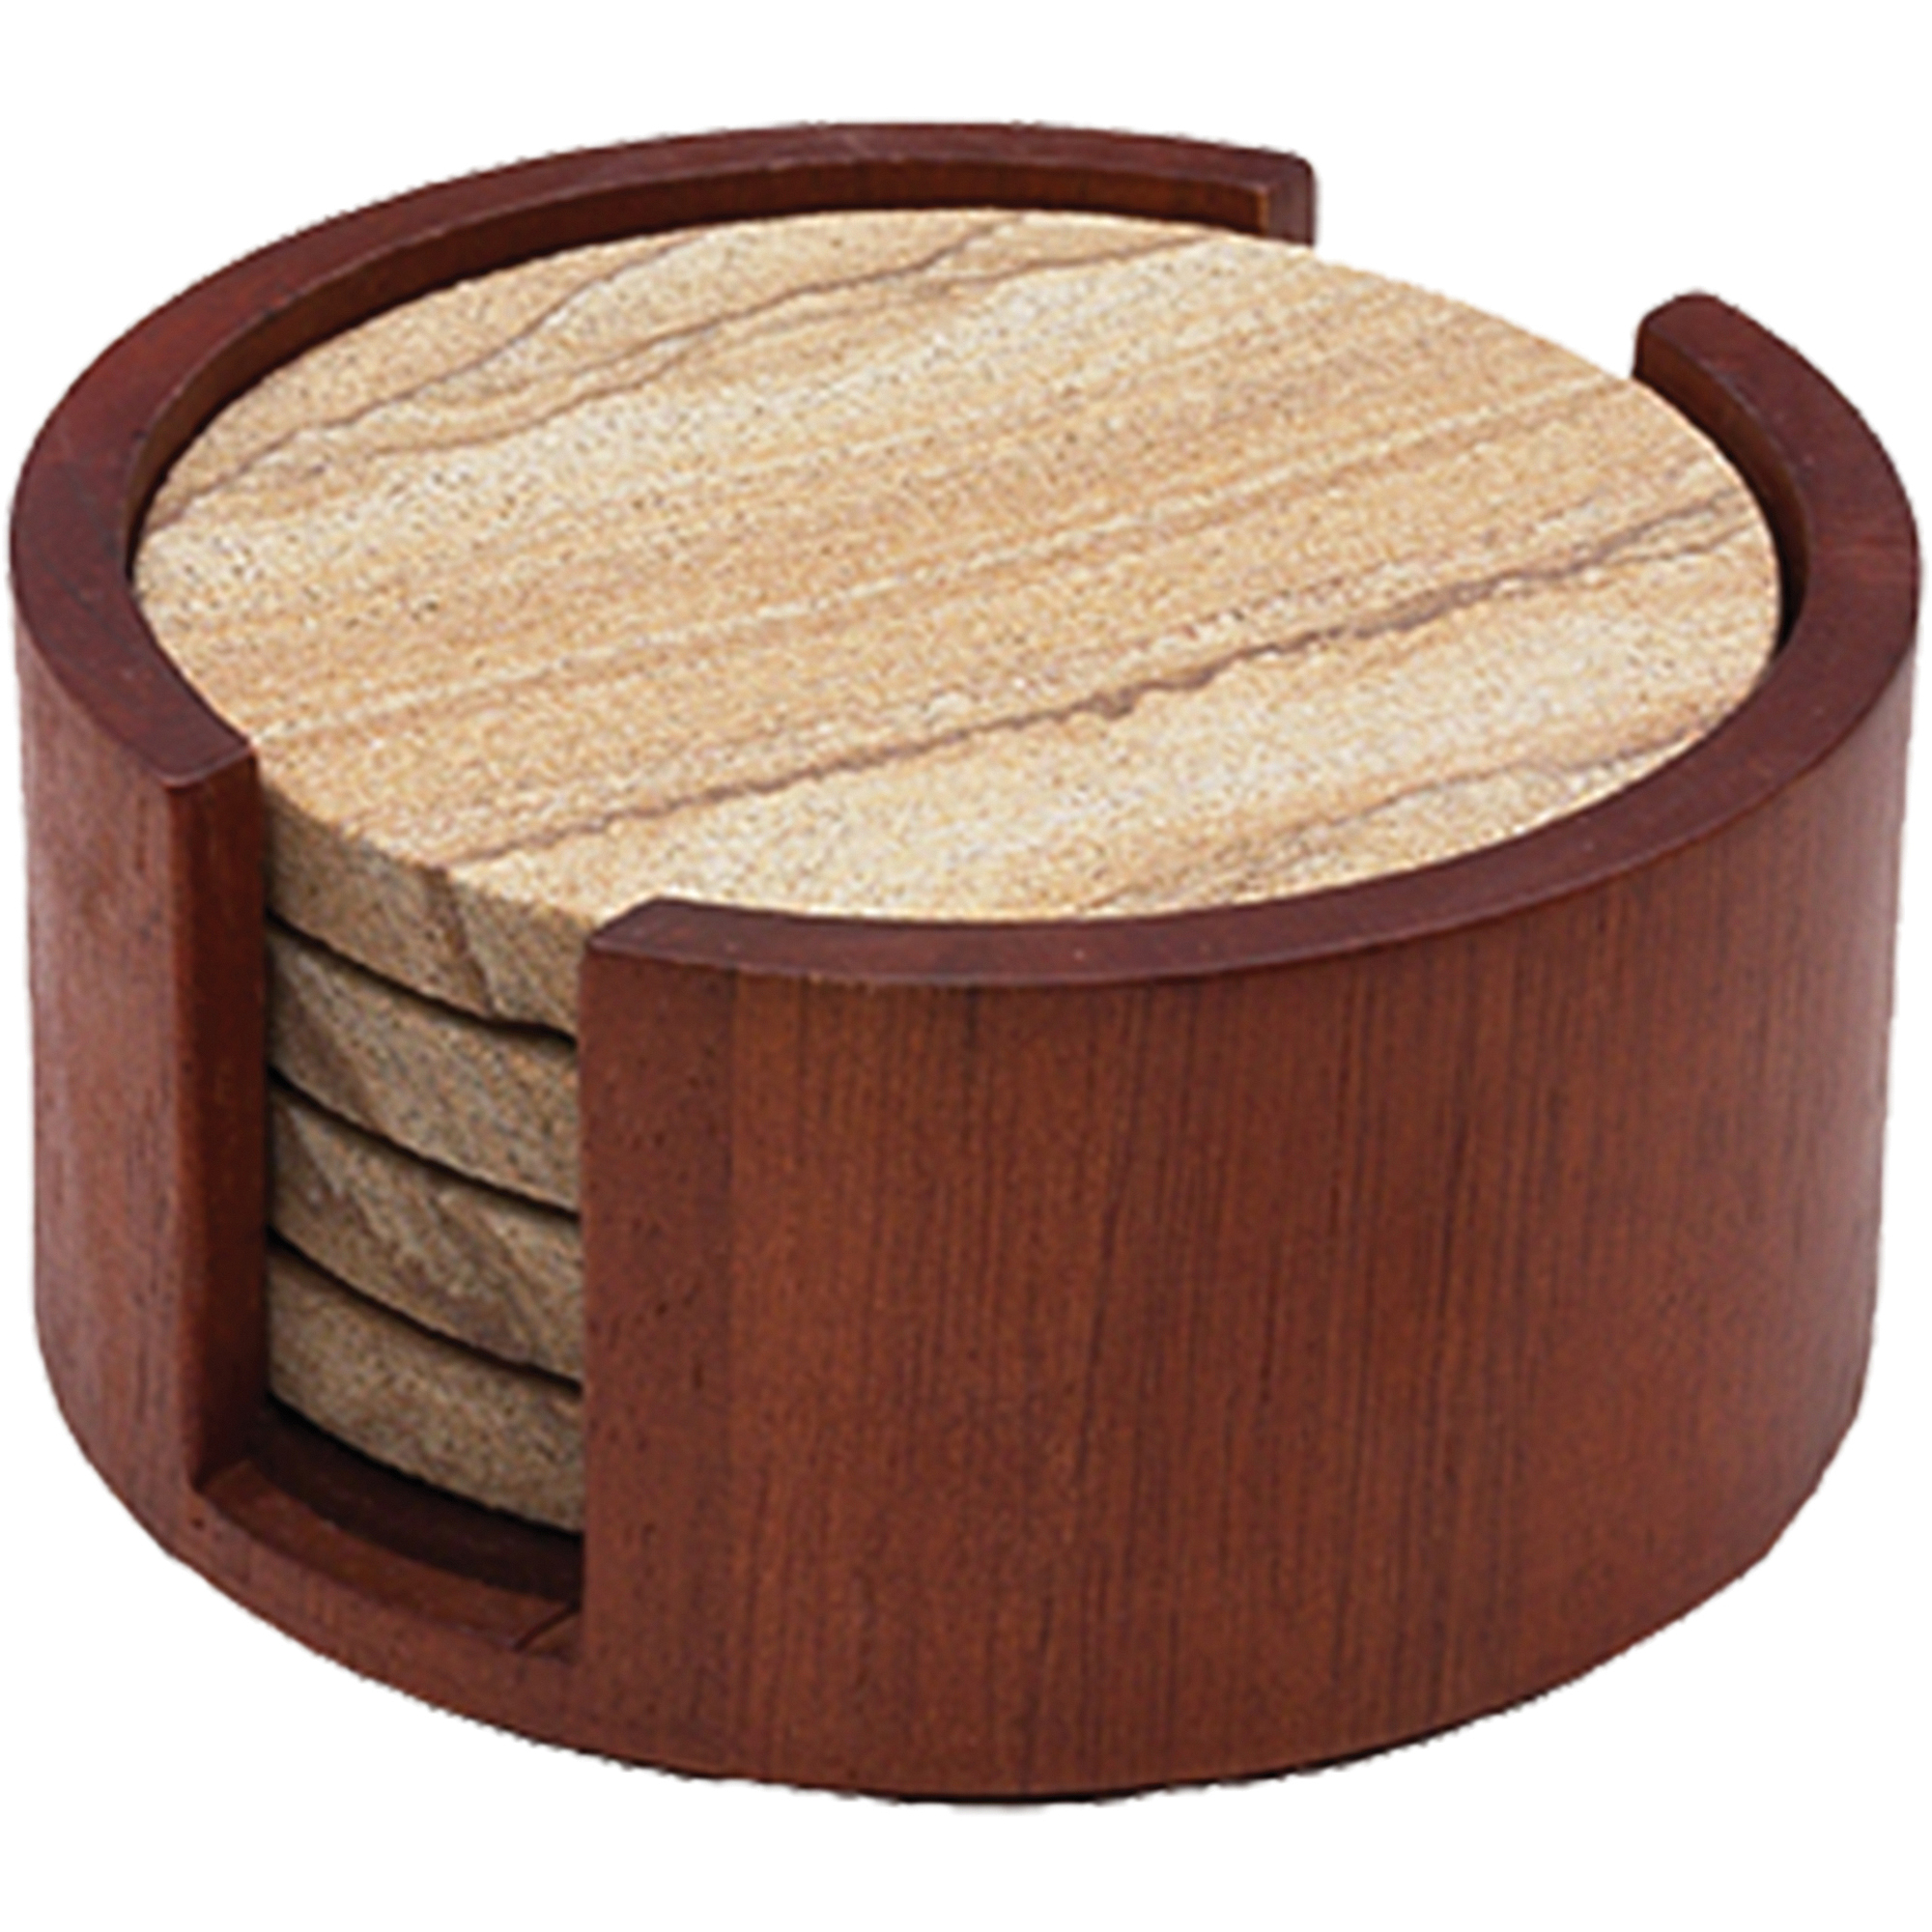 Thirstystone Circular Drink Coaster Holder, Cherry